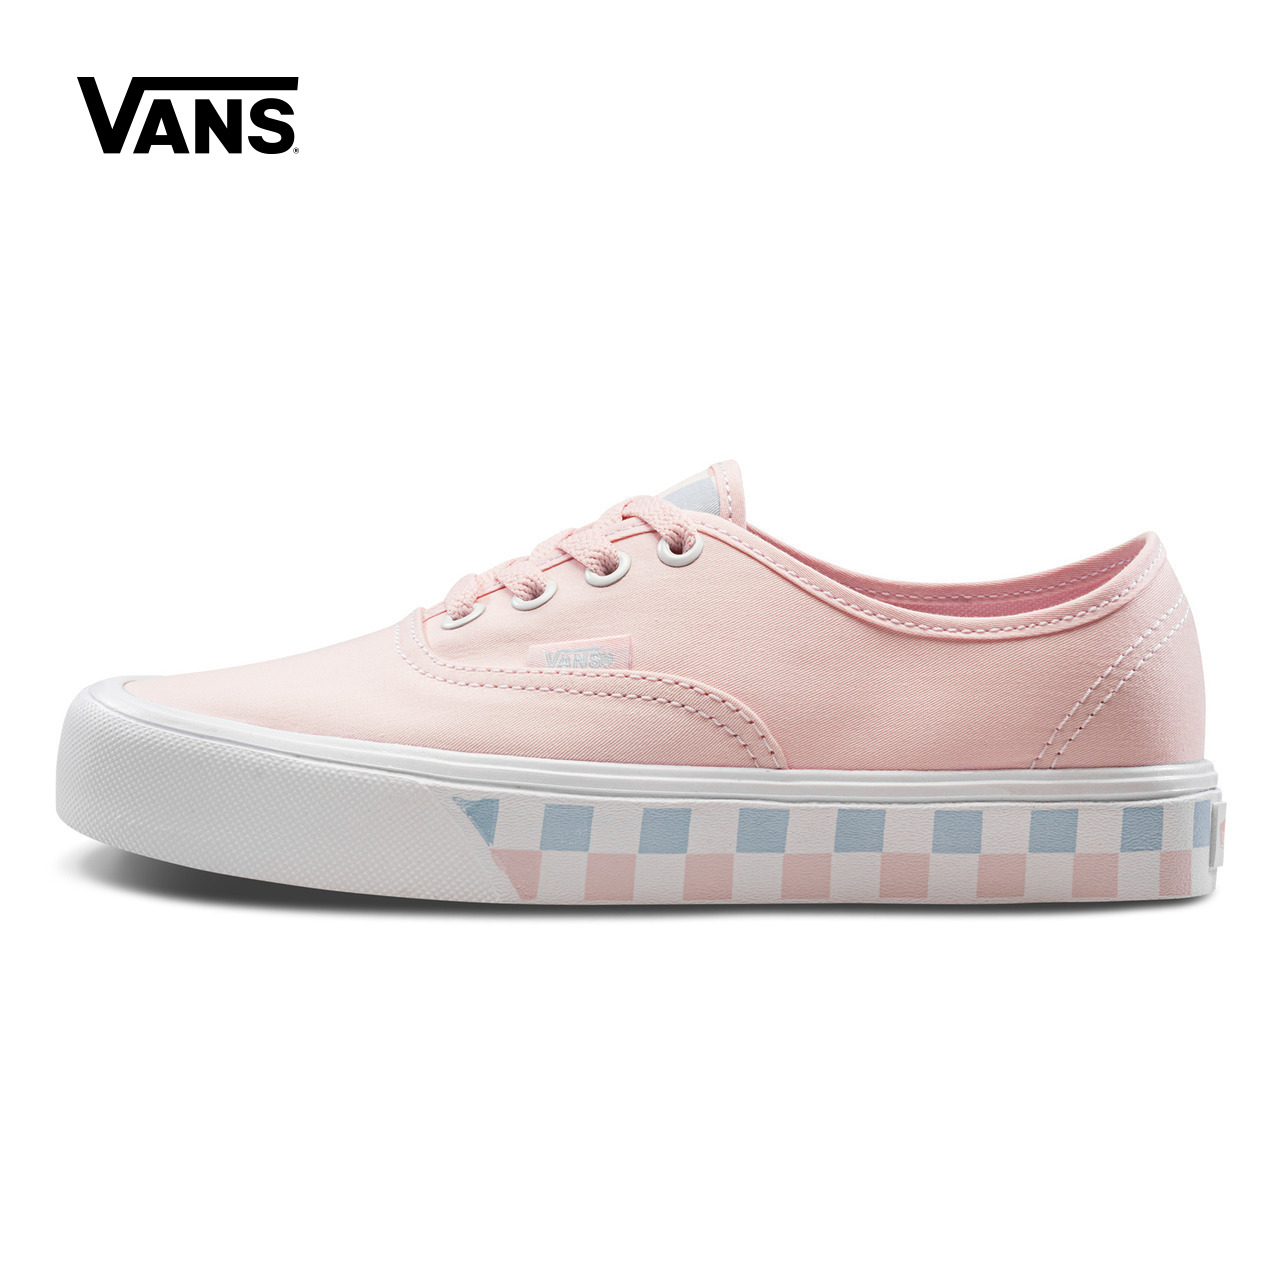 Original New Arrival Vans Women's Classic Authentic Lite Low-top Skateboarding Shoes Sport Outdoor Sneakers Canvas VN0A2Z5JT1J